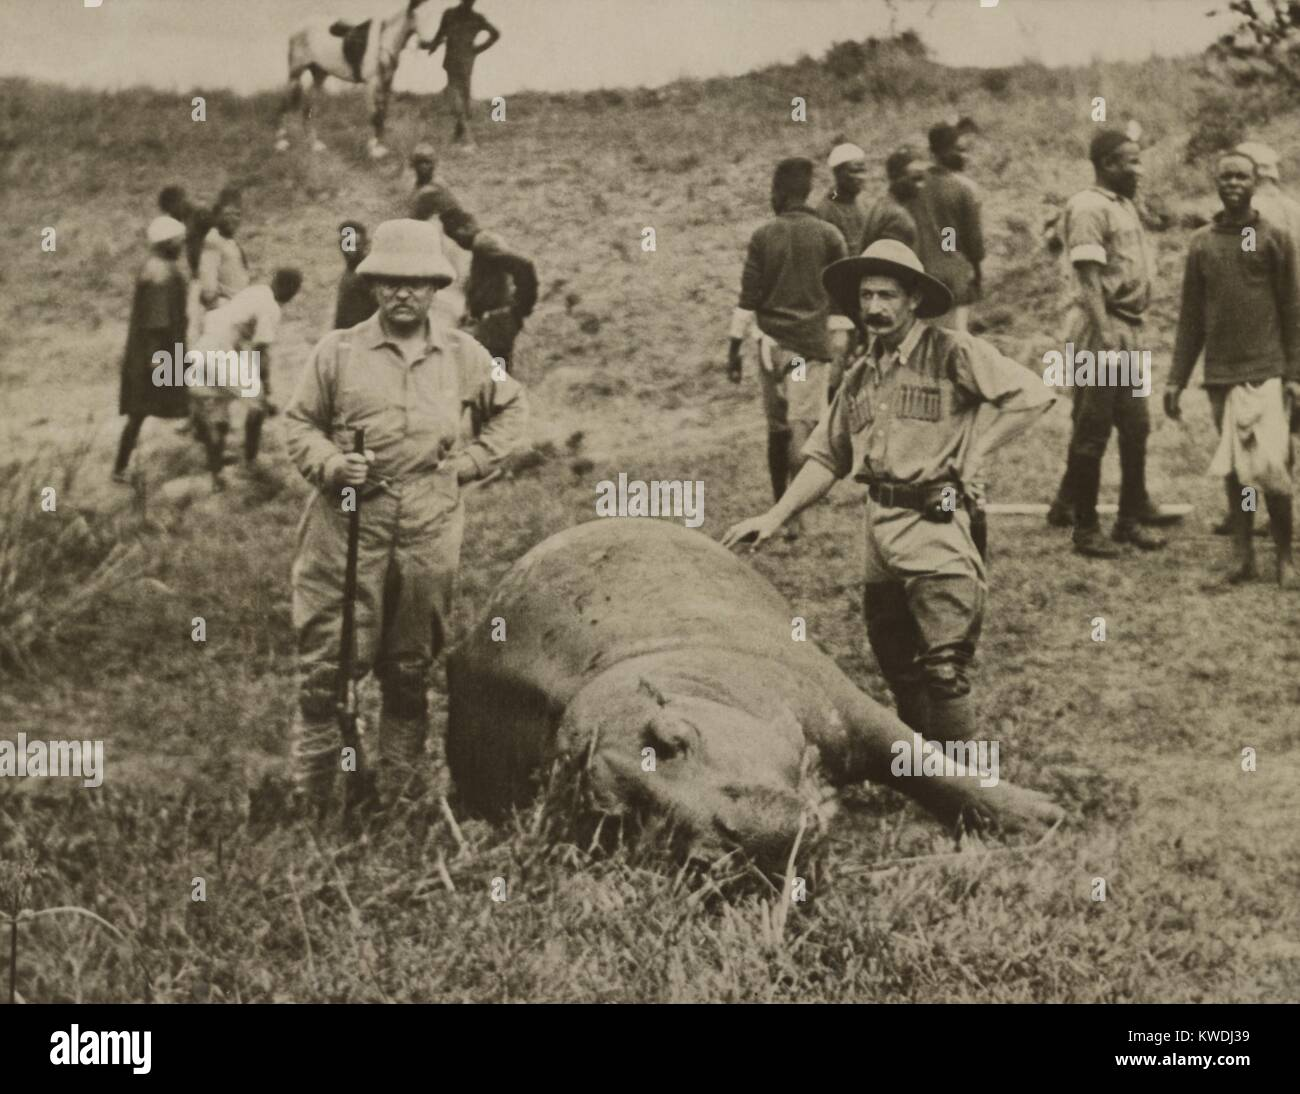 Theodore Roosevelt and unidentified man standing over a killed hippopotamus. In the background are African workers - Stock Image